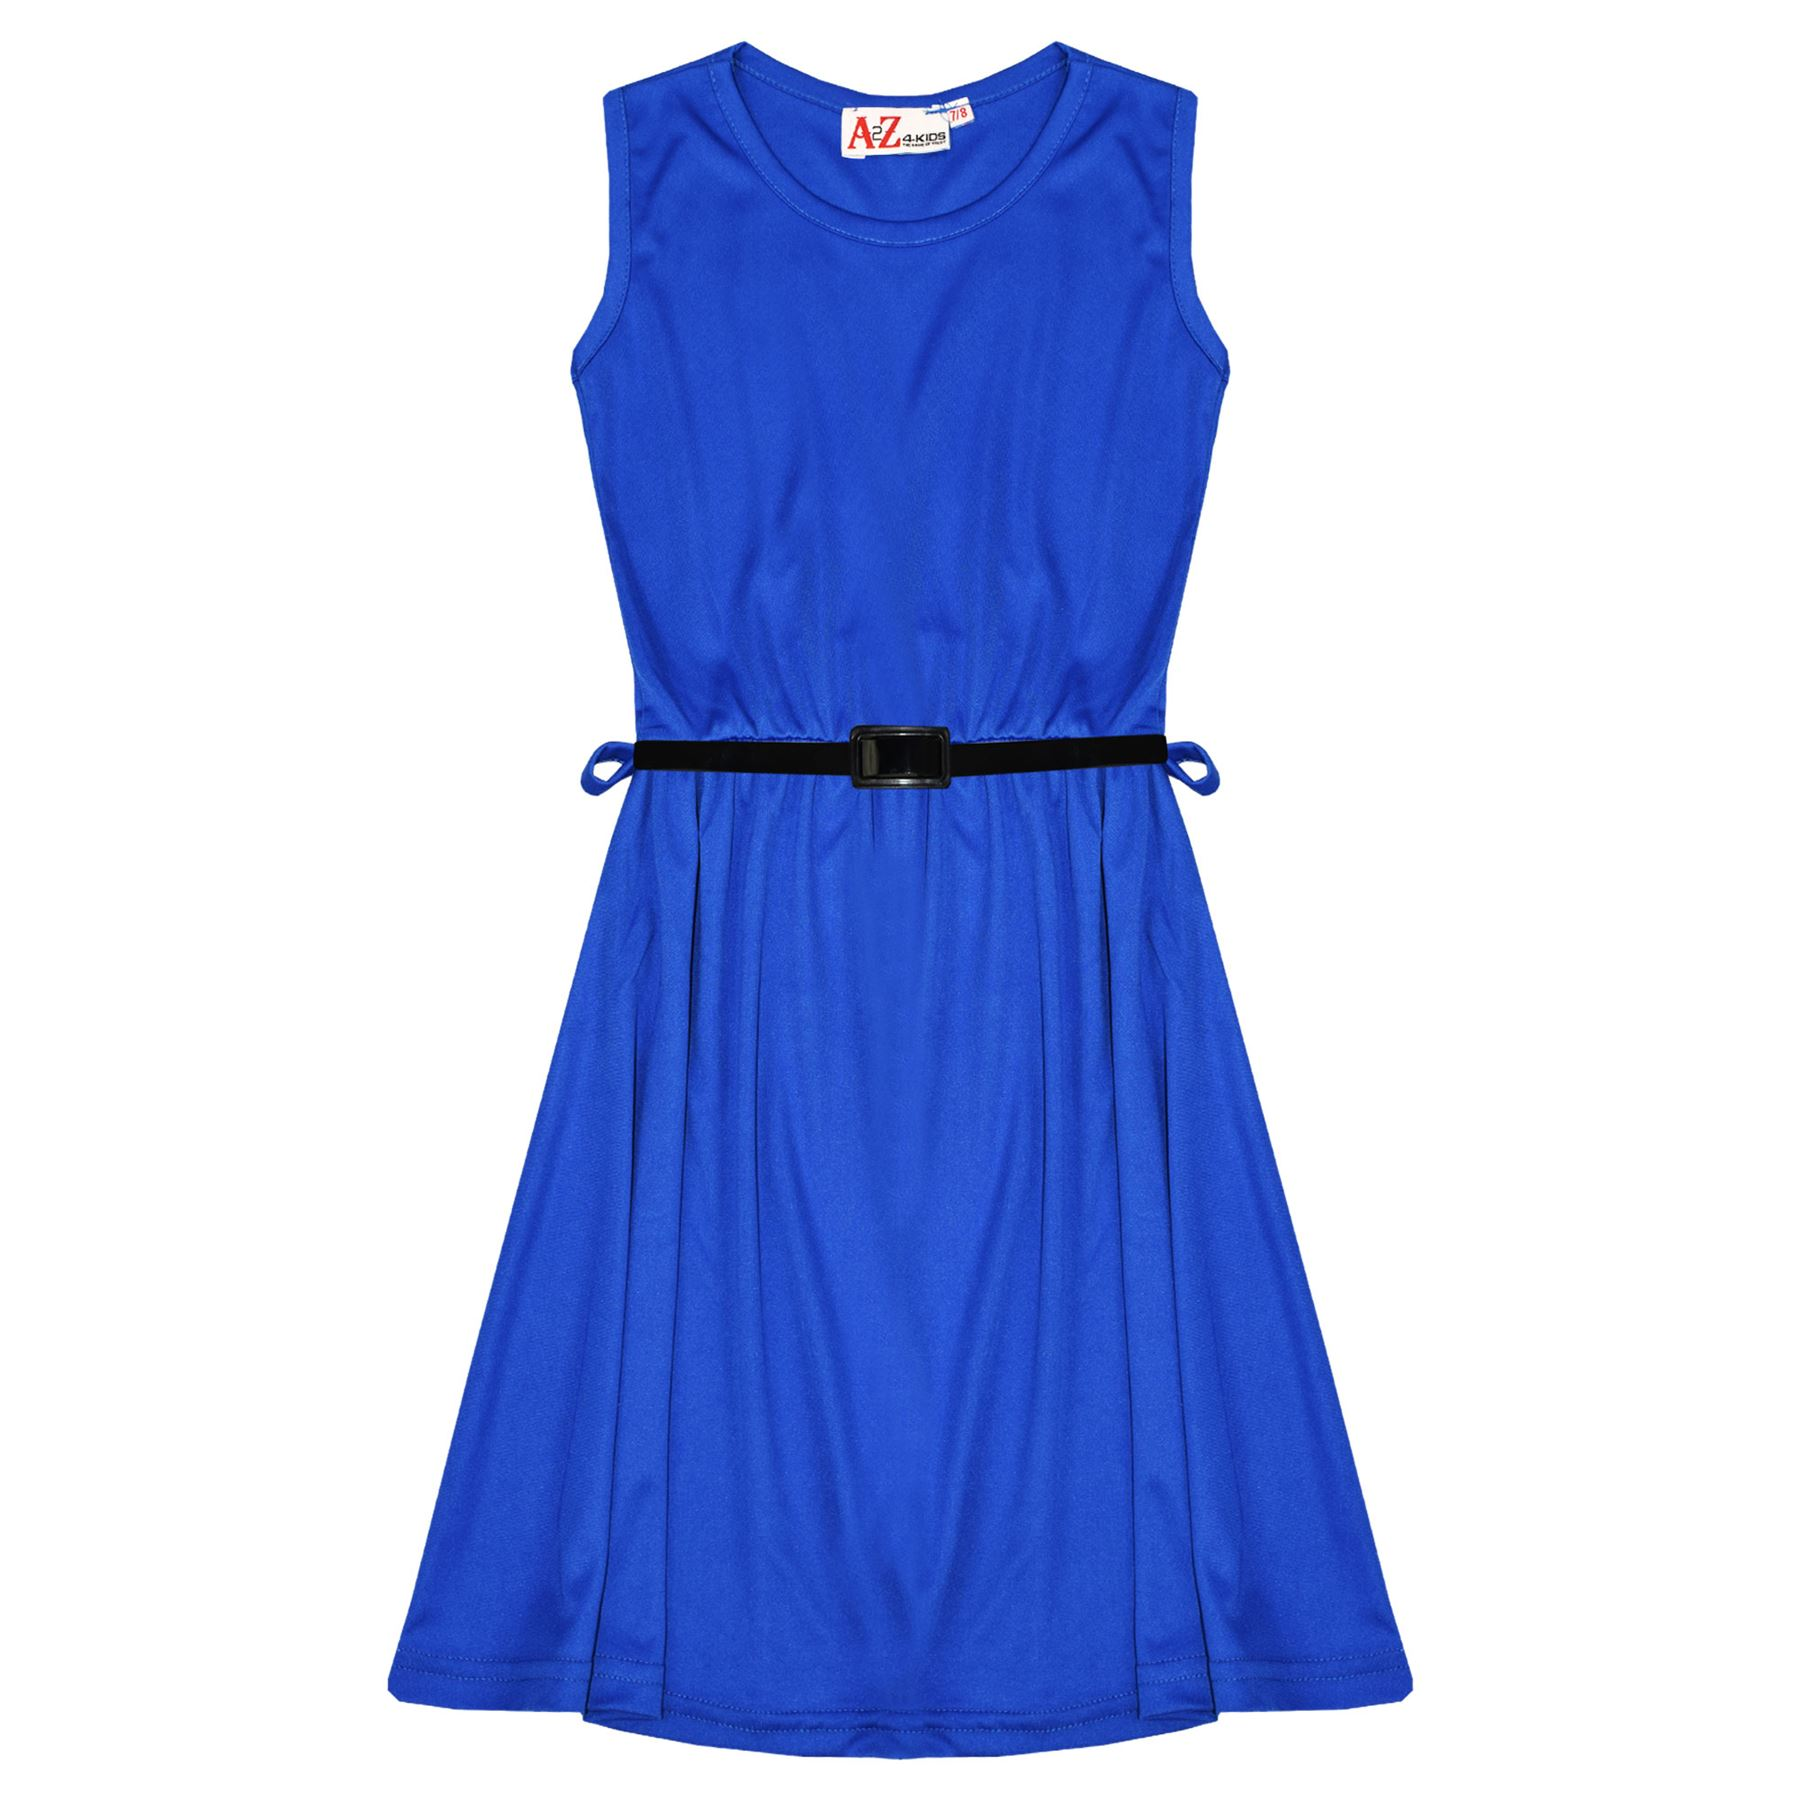 Girls-Skater-Dress-Kids-Party-Dresses-With-Free-Belt-5-6-7-8-9-10-11-12-13-Years thumbnail 72